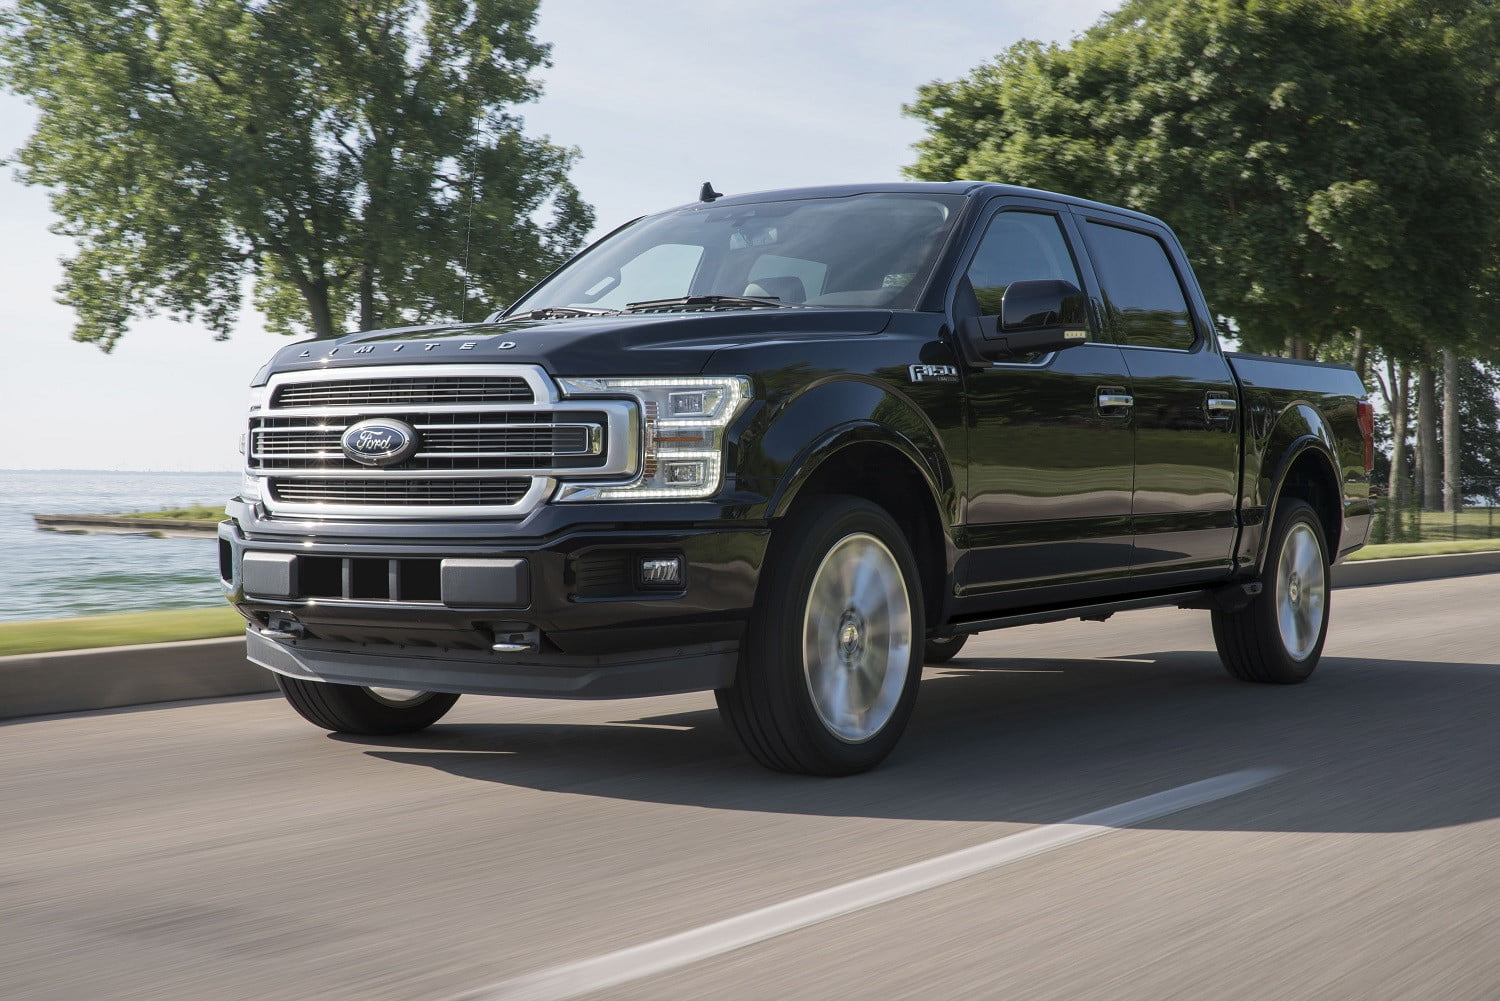 Ford aluminum truck beds prove haters wrong, are cheaper to repair than steel